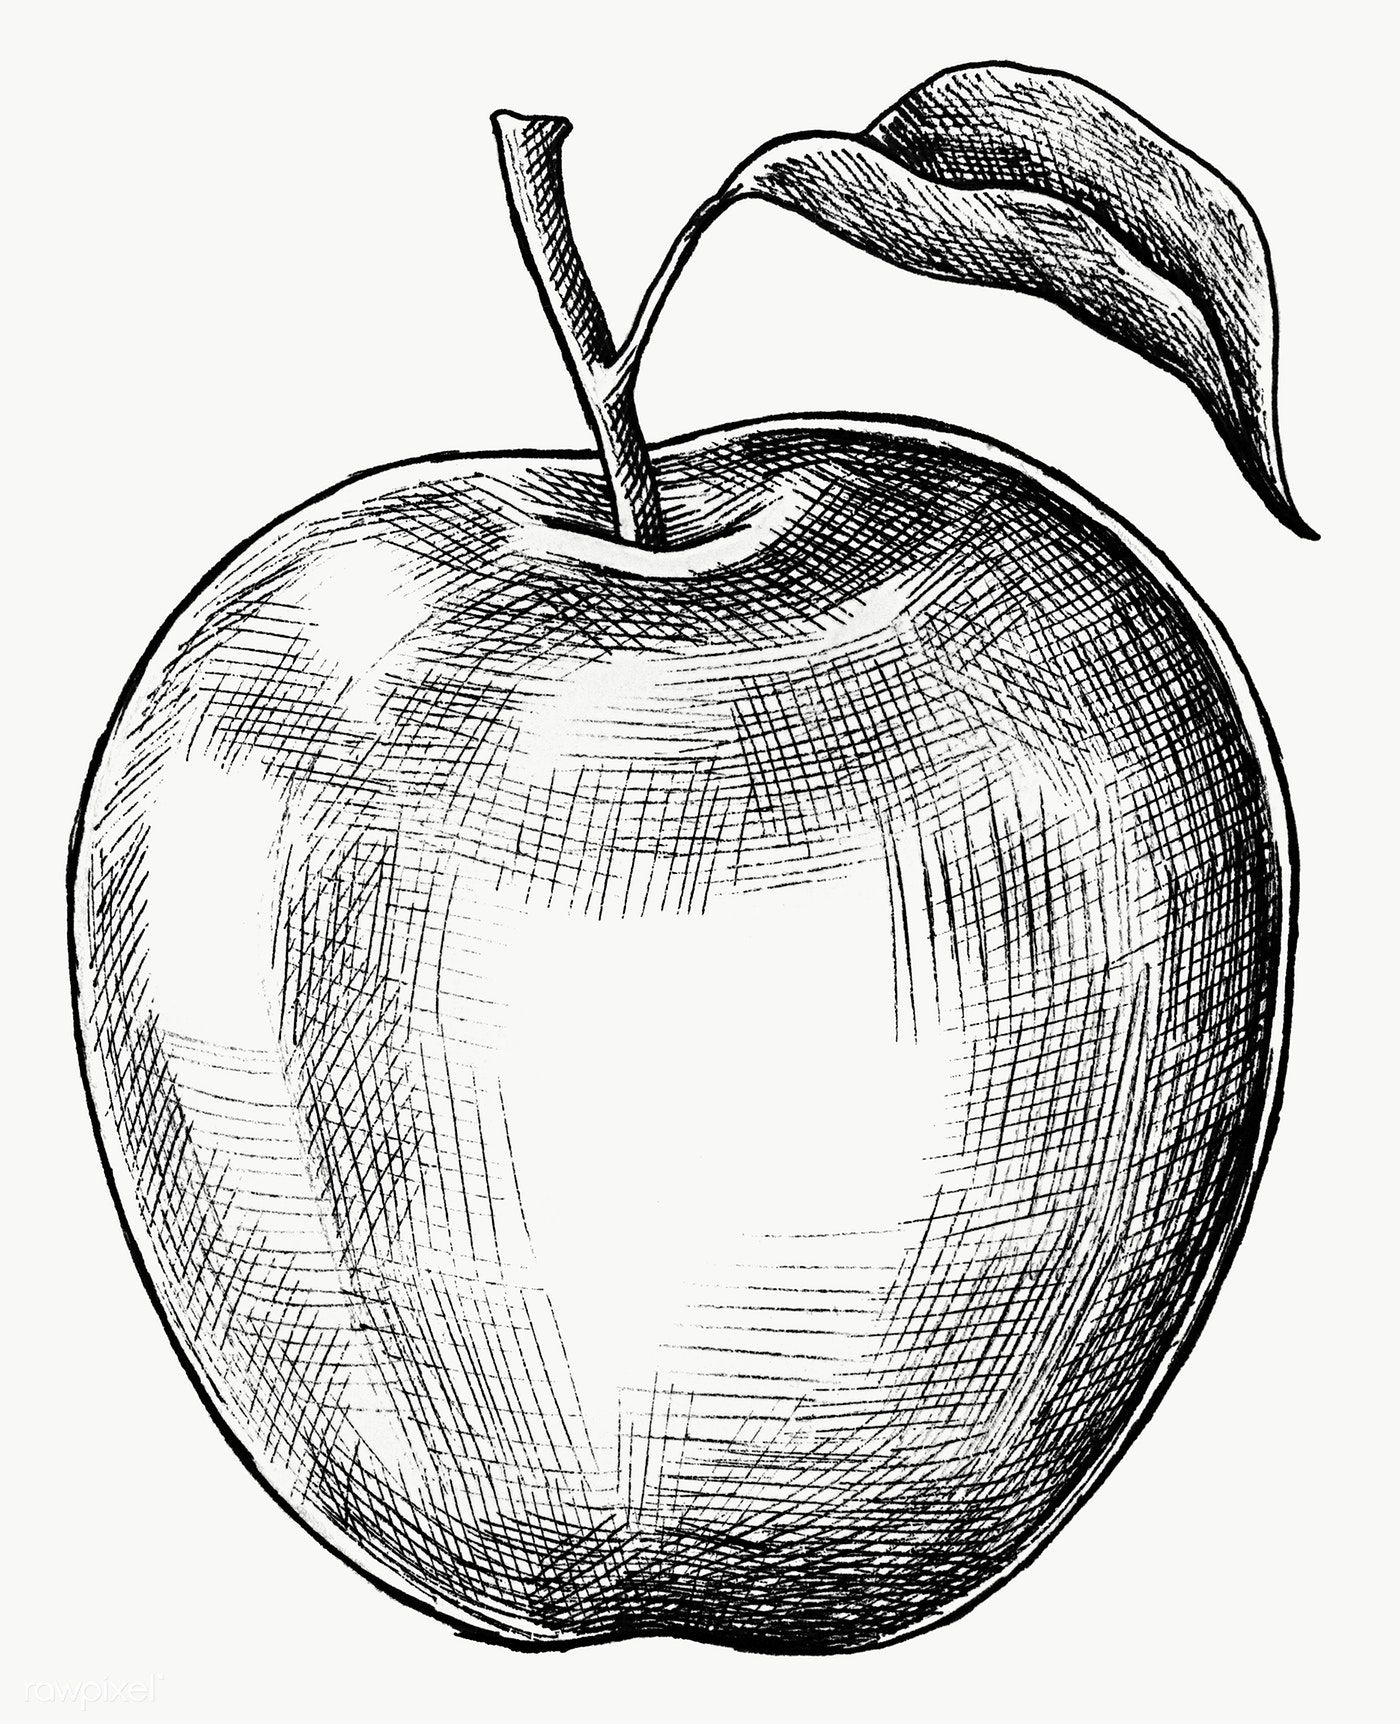 Hand Drawn Fresh Apple Fruit Transparent Png Free Image By Rawpixel Com How To Draw Hands Drawing Apple Pen Art Drawings